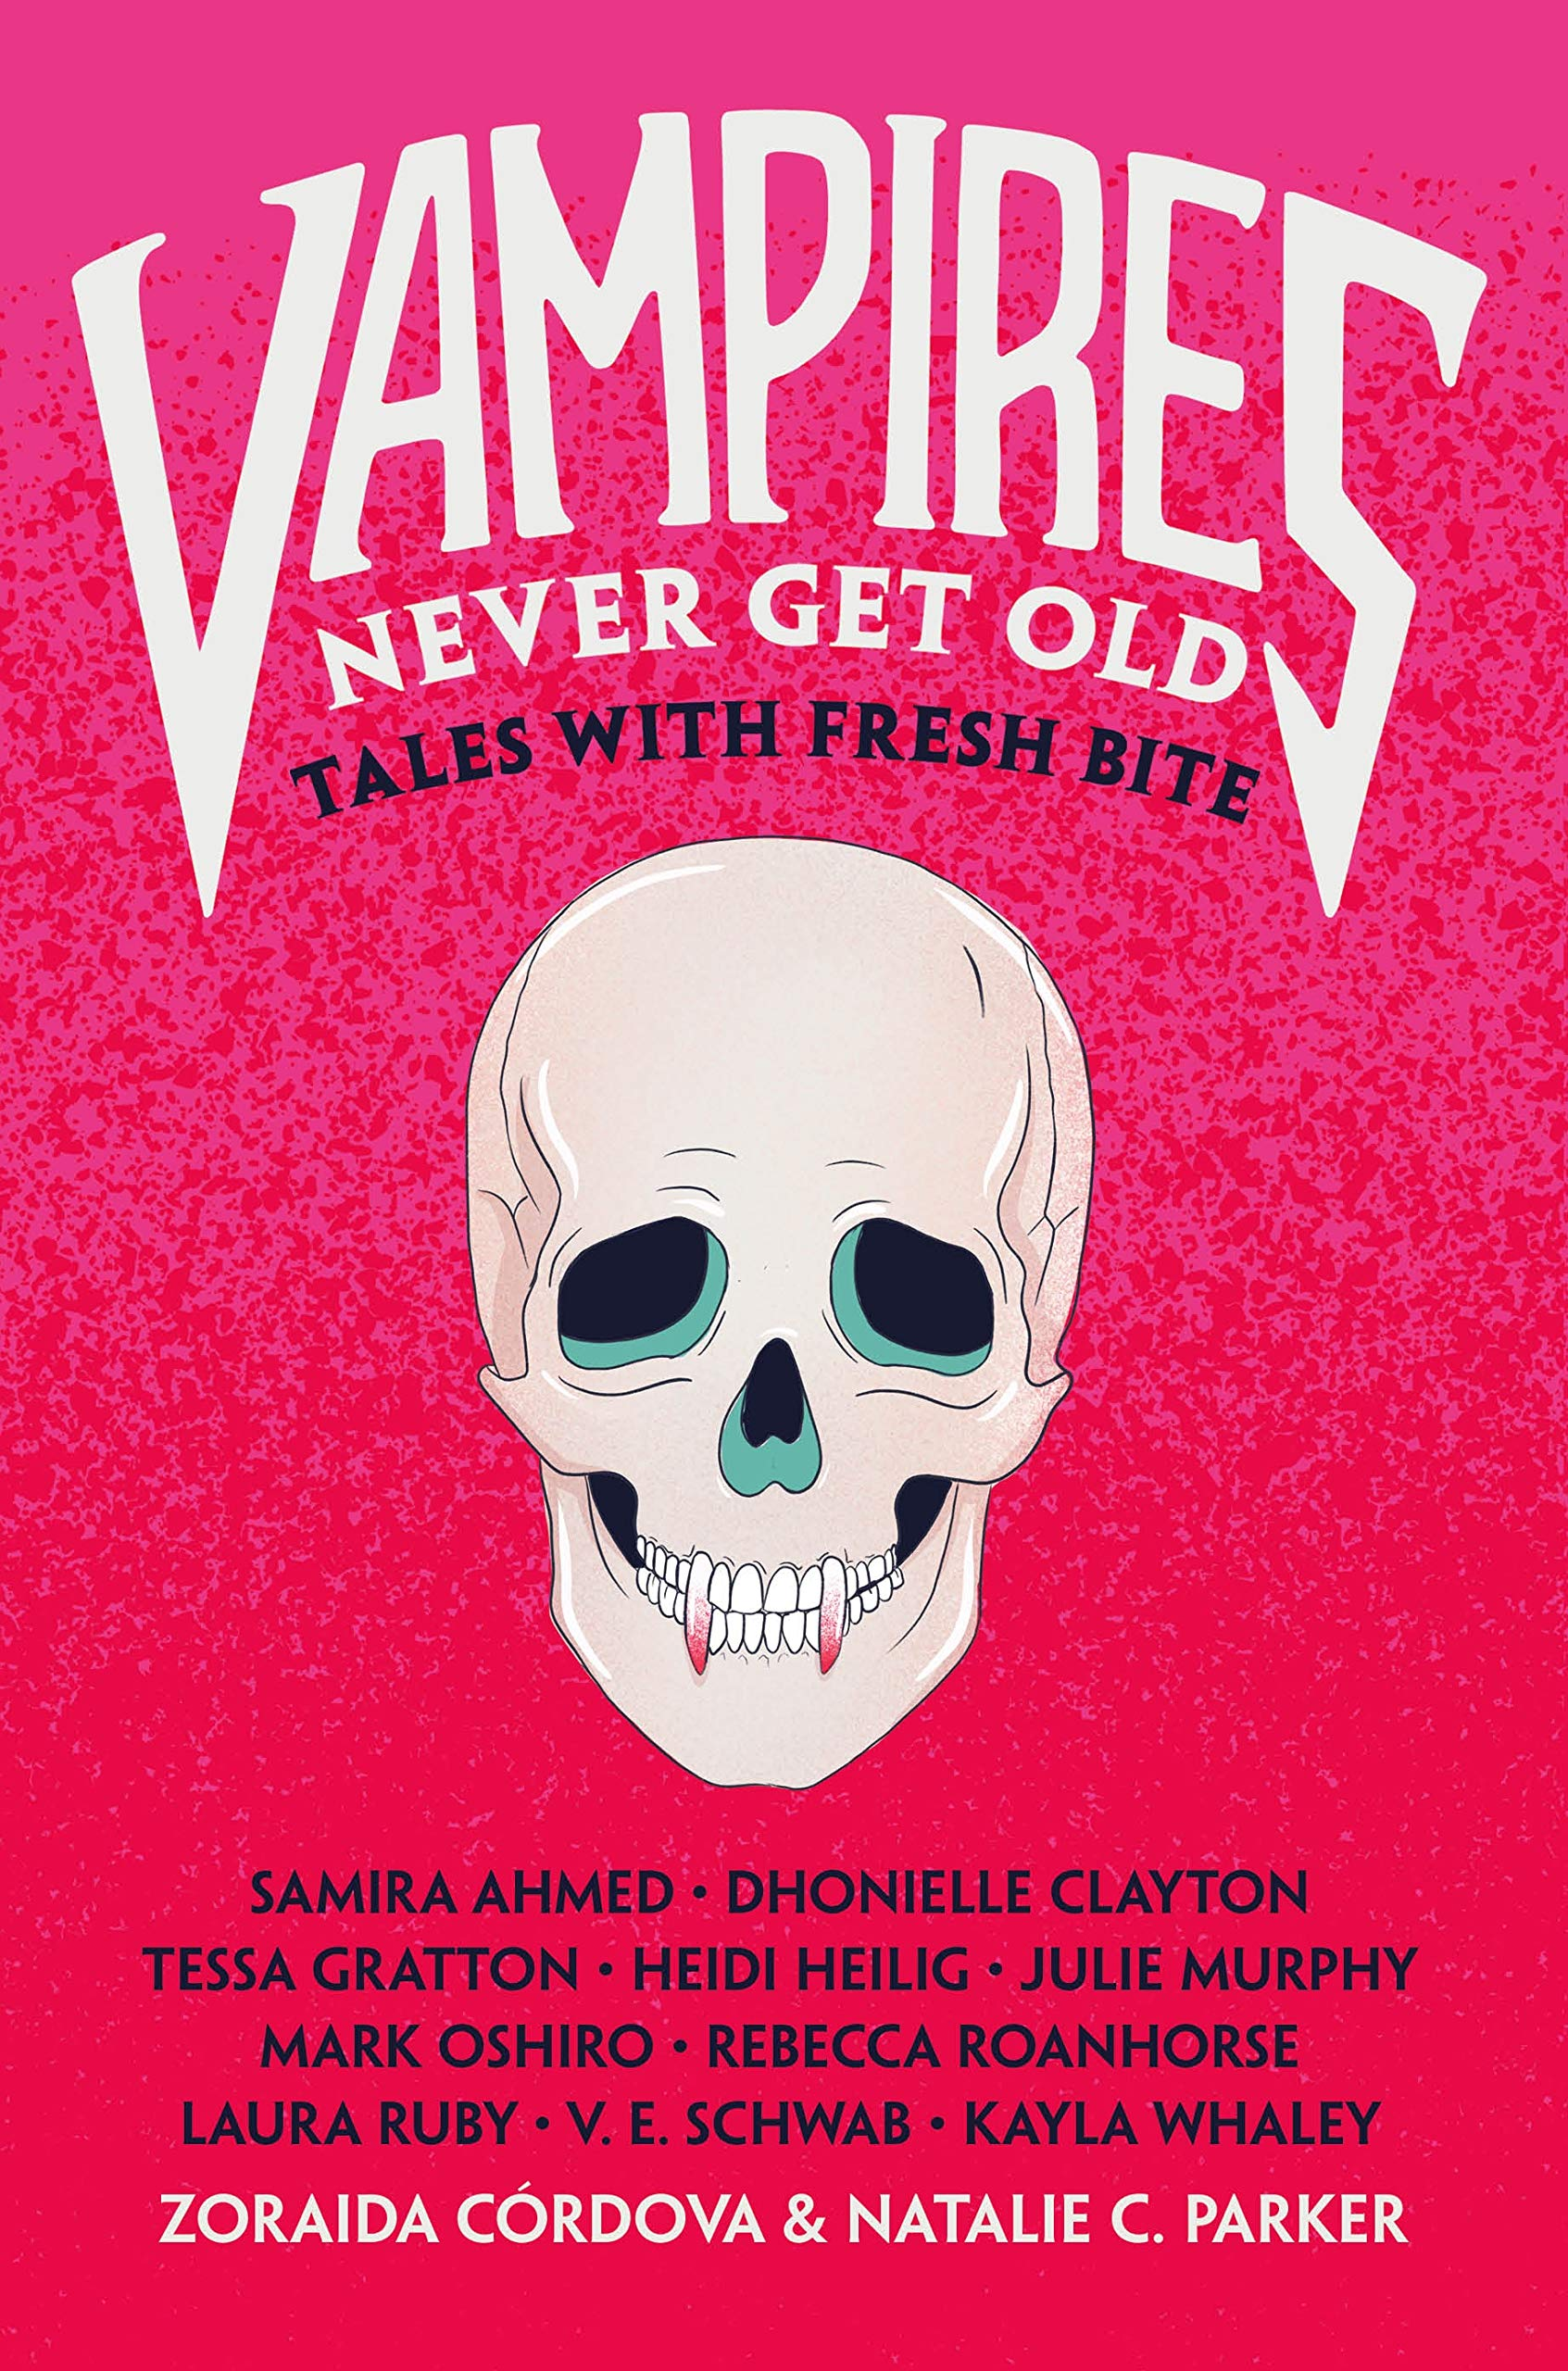 Amazon.com: Vampires Never Get Old: Tales with Fresh Bite (9781250230010):  Cordova, Zoraida, Parker, Natalie C.: Books